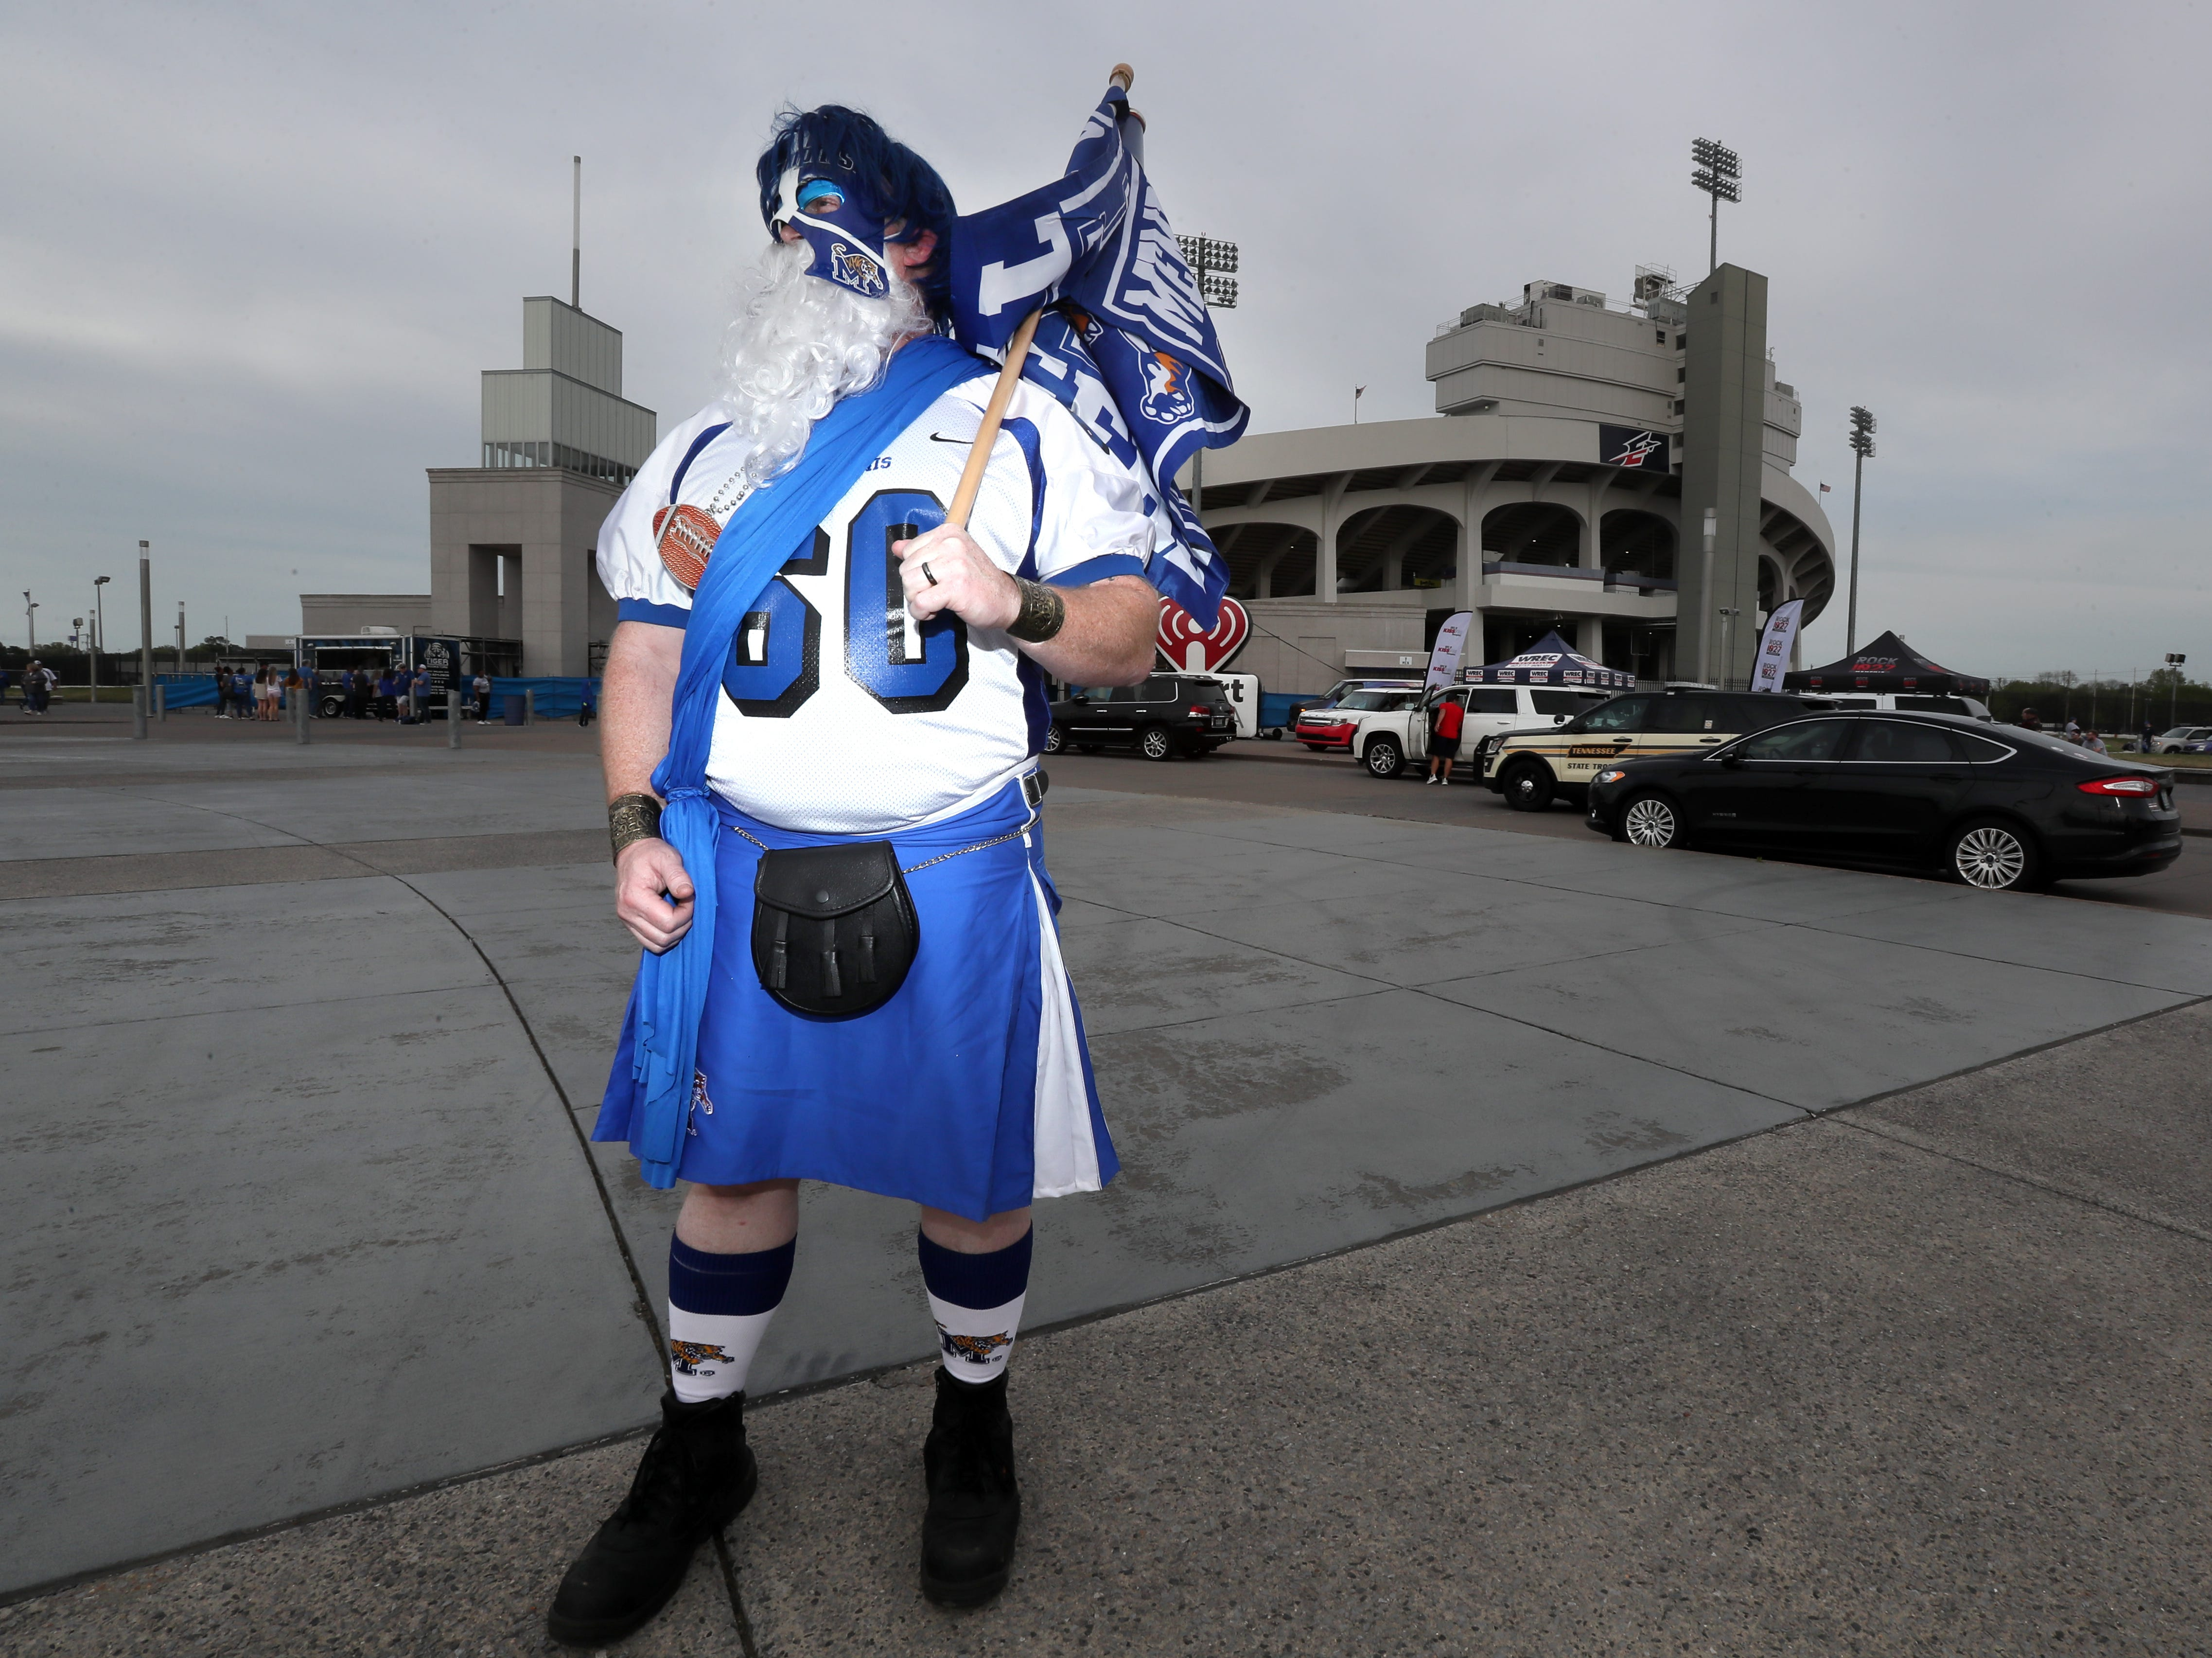 Phillip Glass in his 'Ultimate Tiger' outfit before the team's 'Friday Night Stripes' spring game at Liberty Bowl Memorial Stadium on Friday, April 12, 2019.